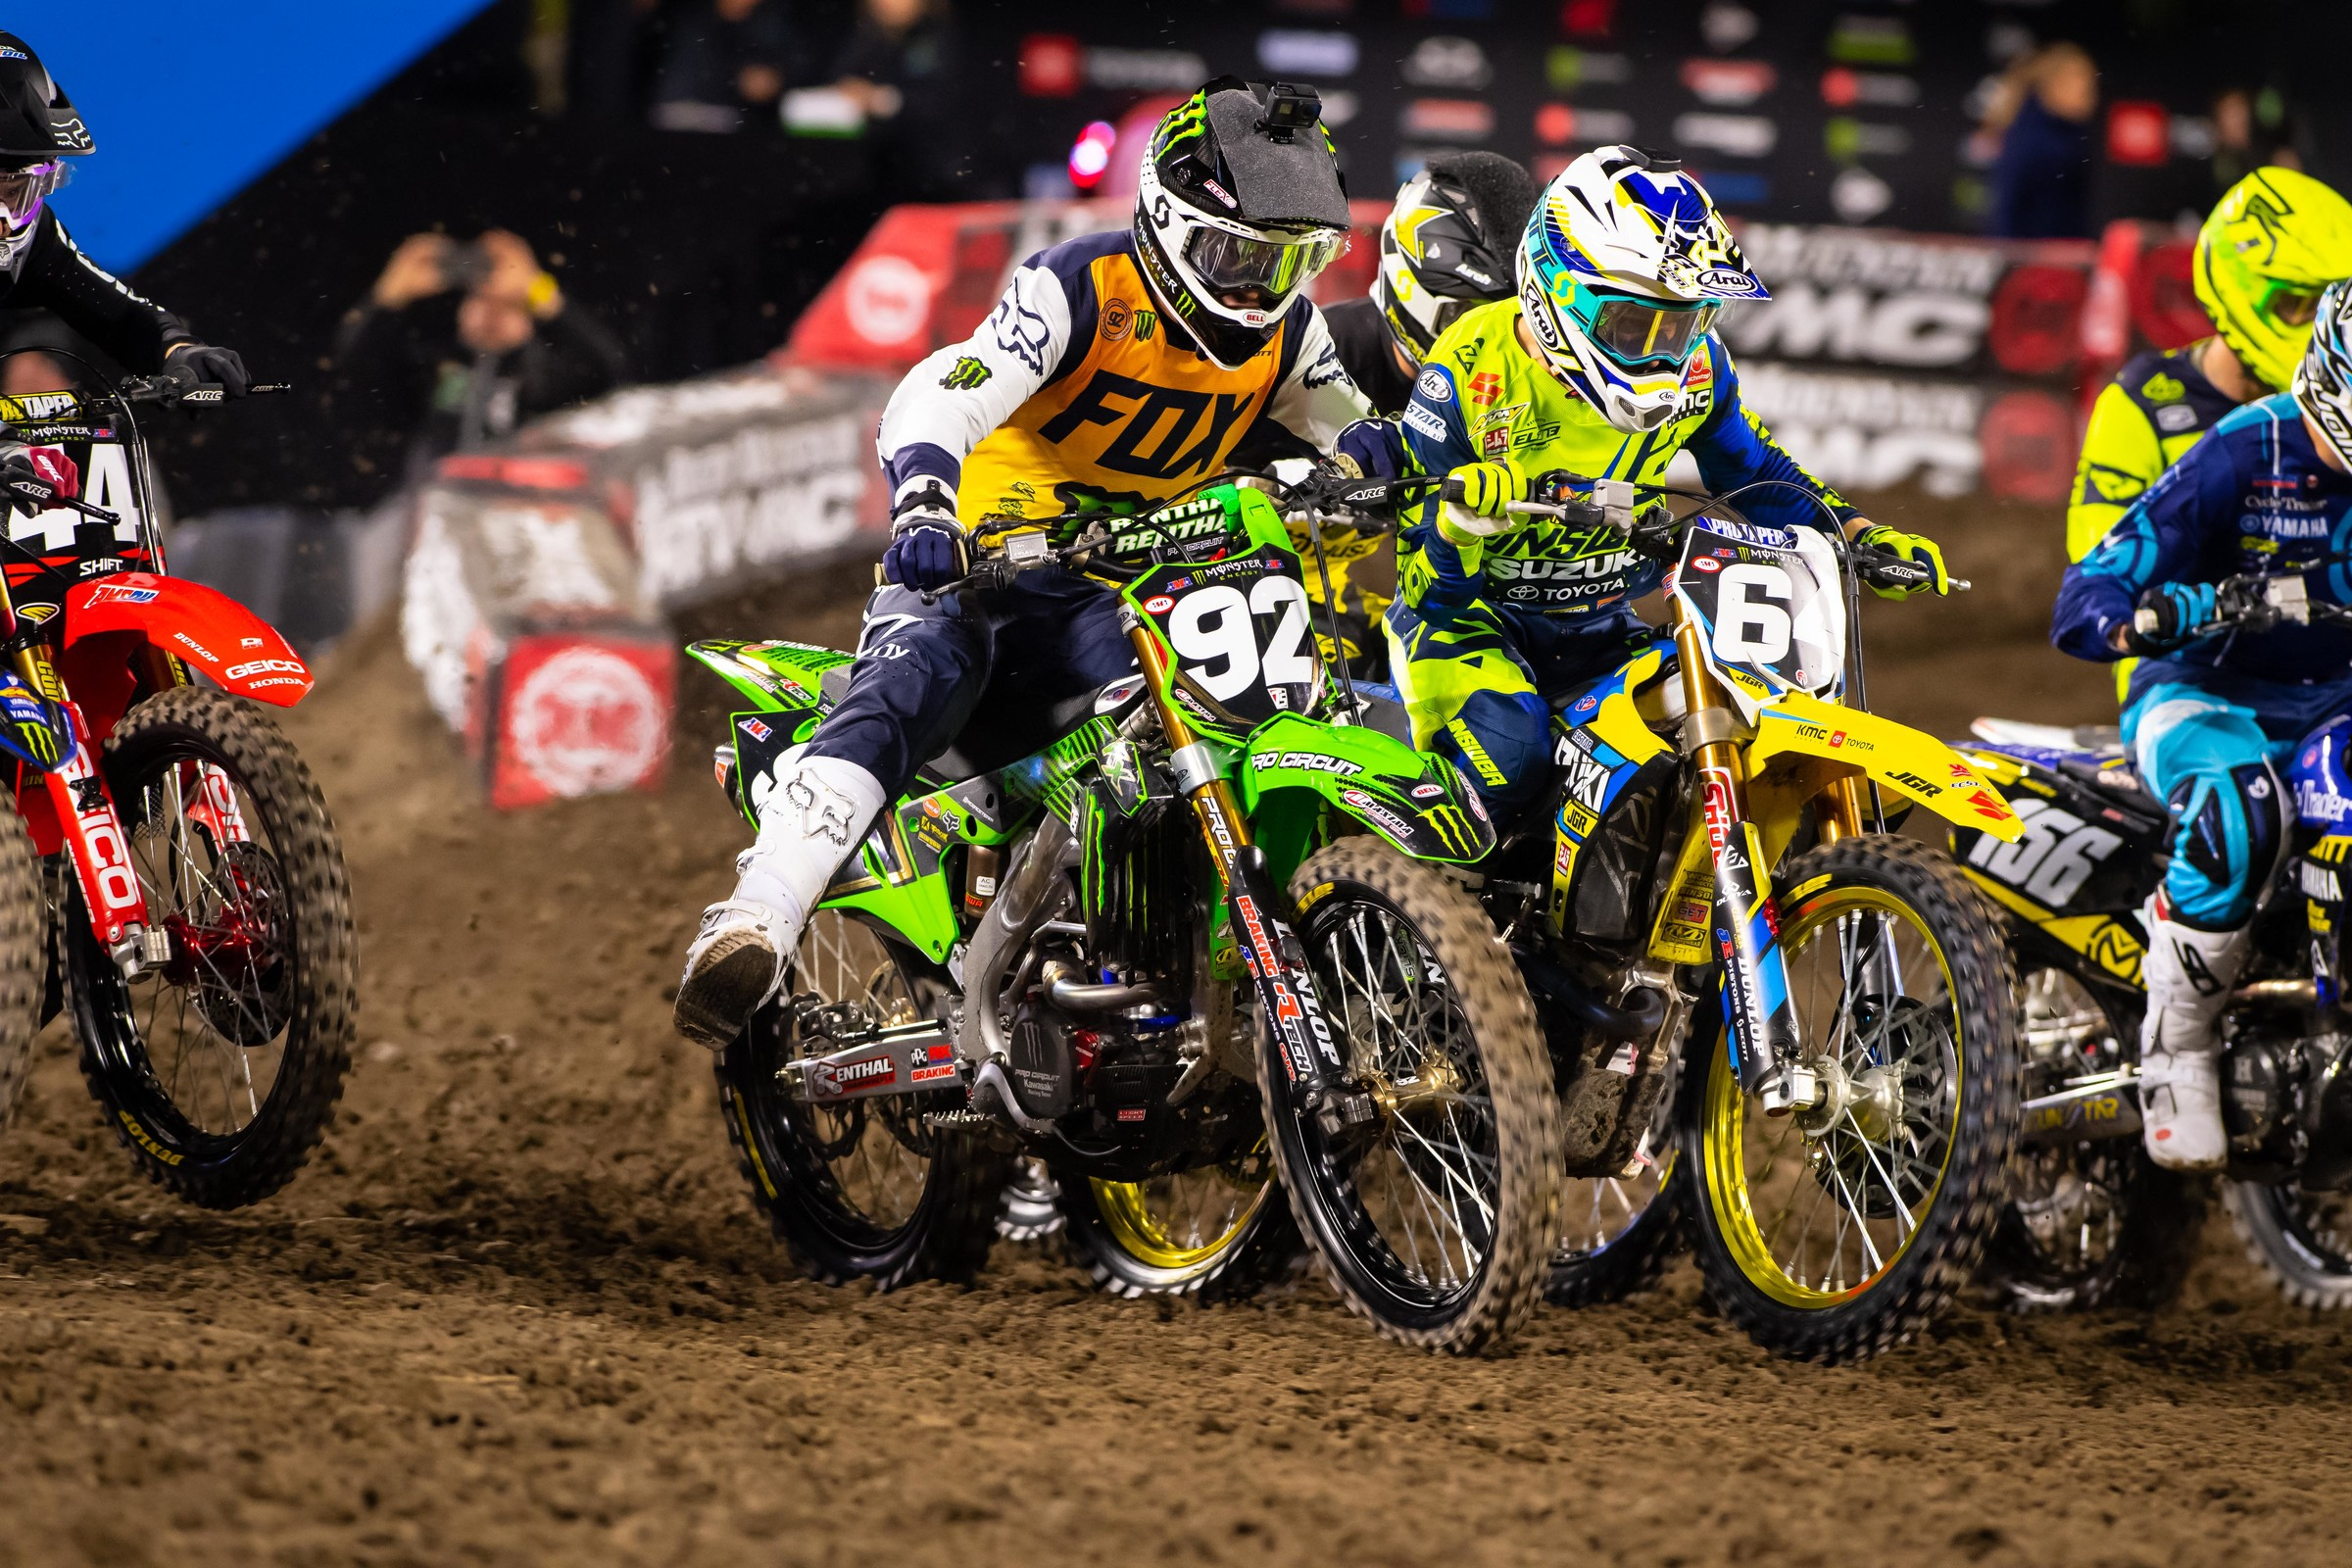 Cianciarulo was putting down fast laps both in qualifying—as the fastest qualifier—and then in his heat race when he finished in first. But when it came to the main event, AC made several mistakes that resulted in a fifth place finish.